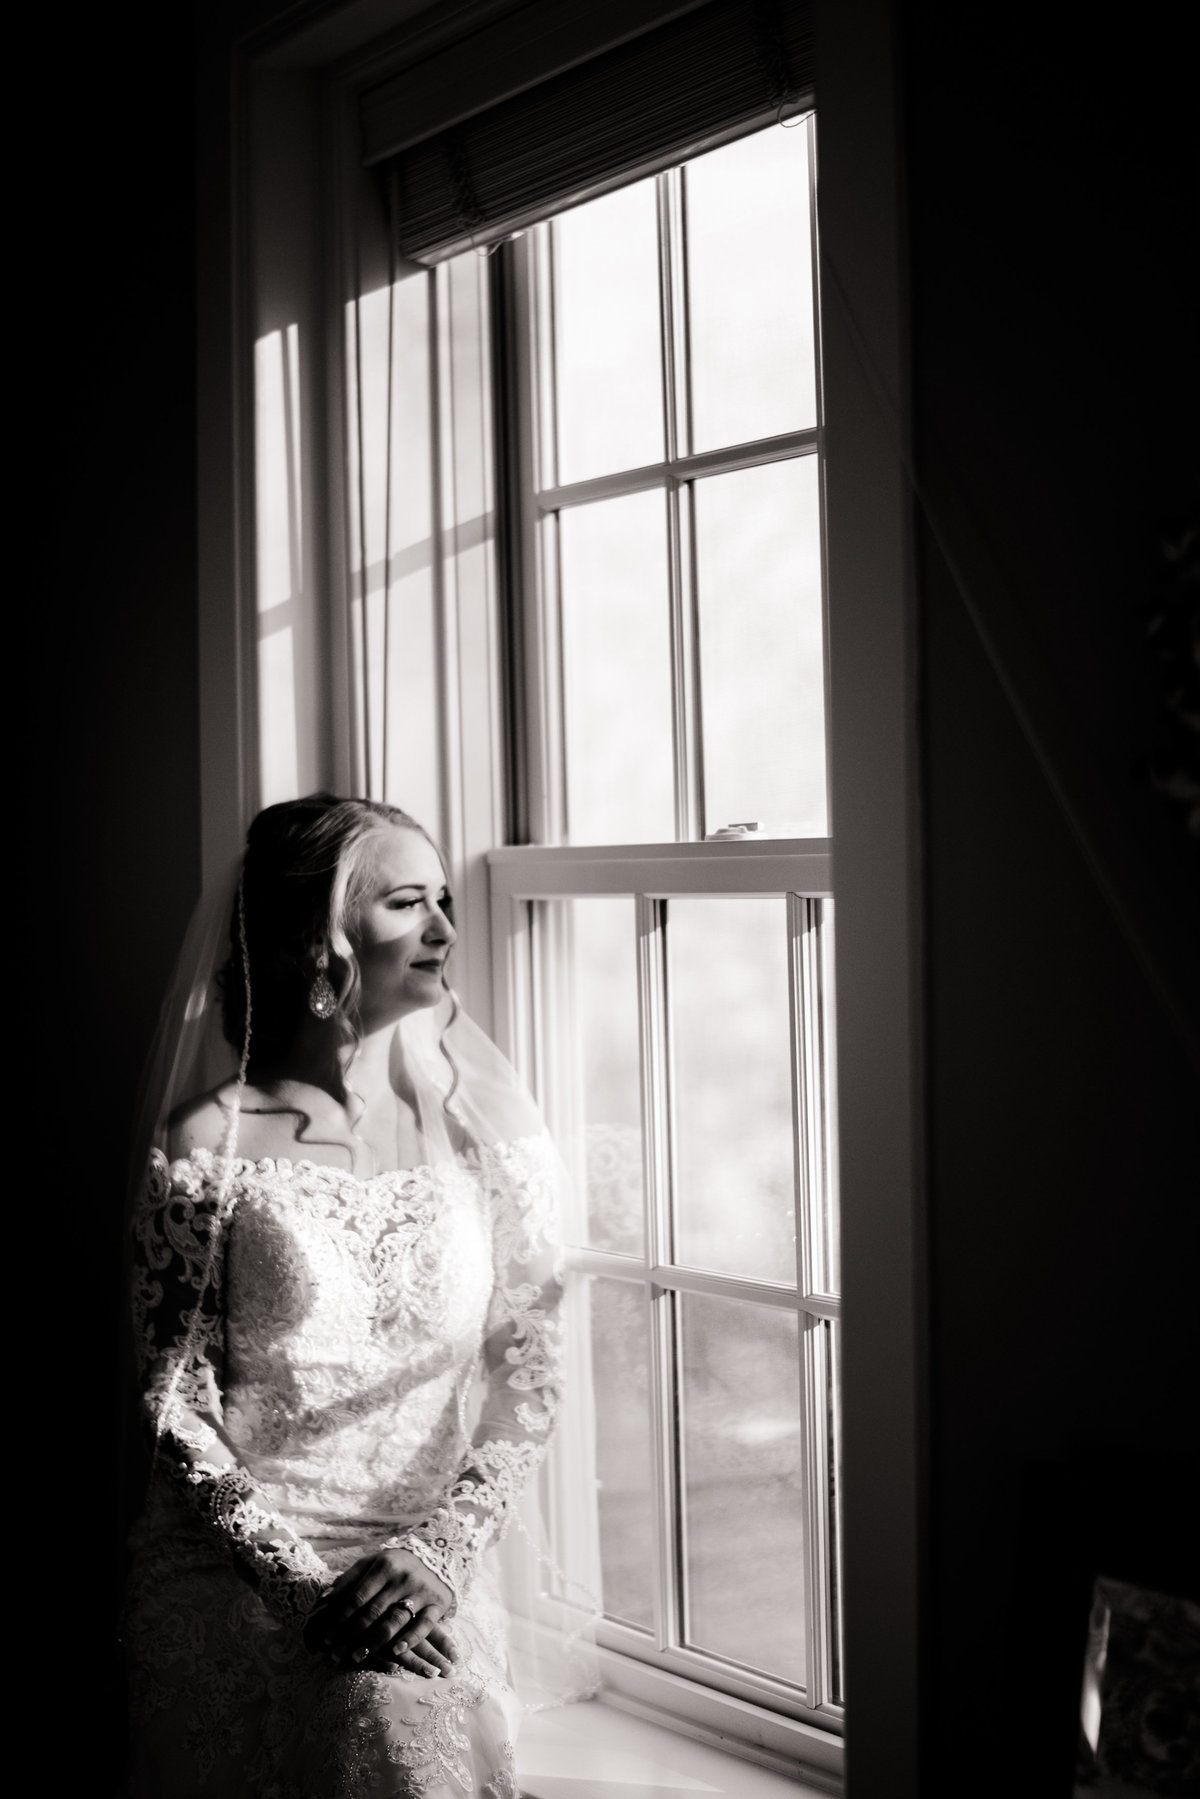 black and white image of bride by window